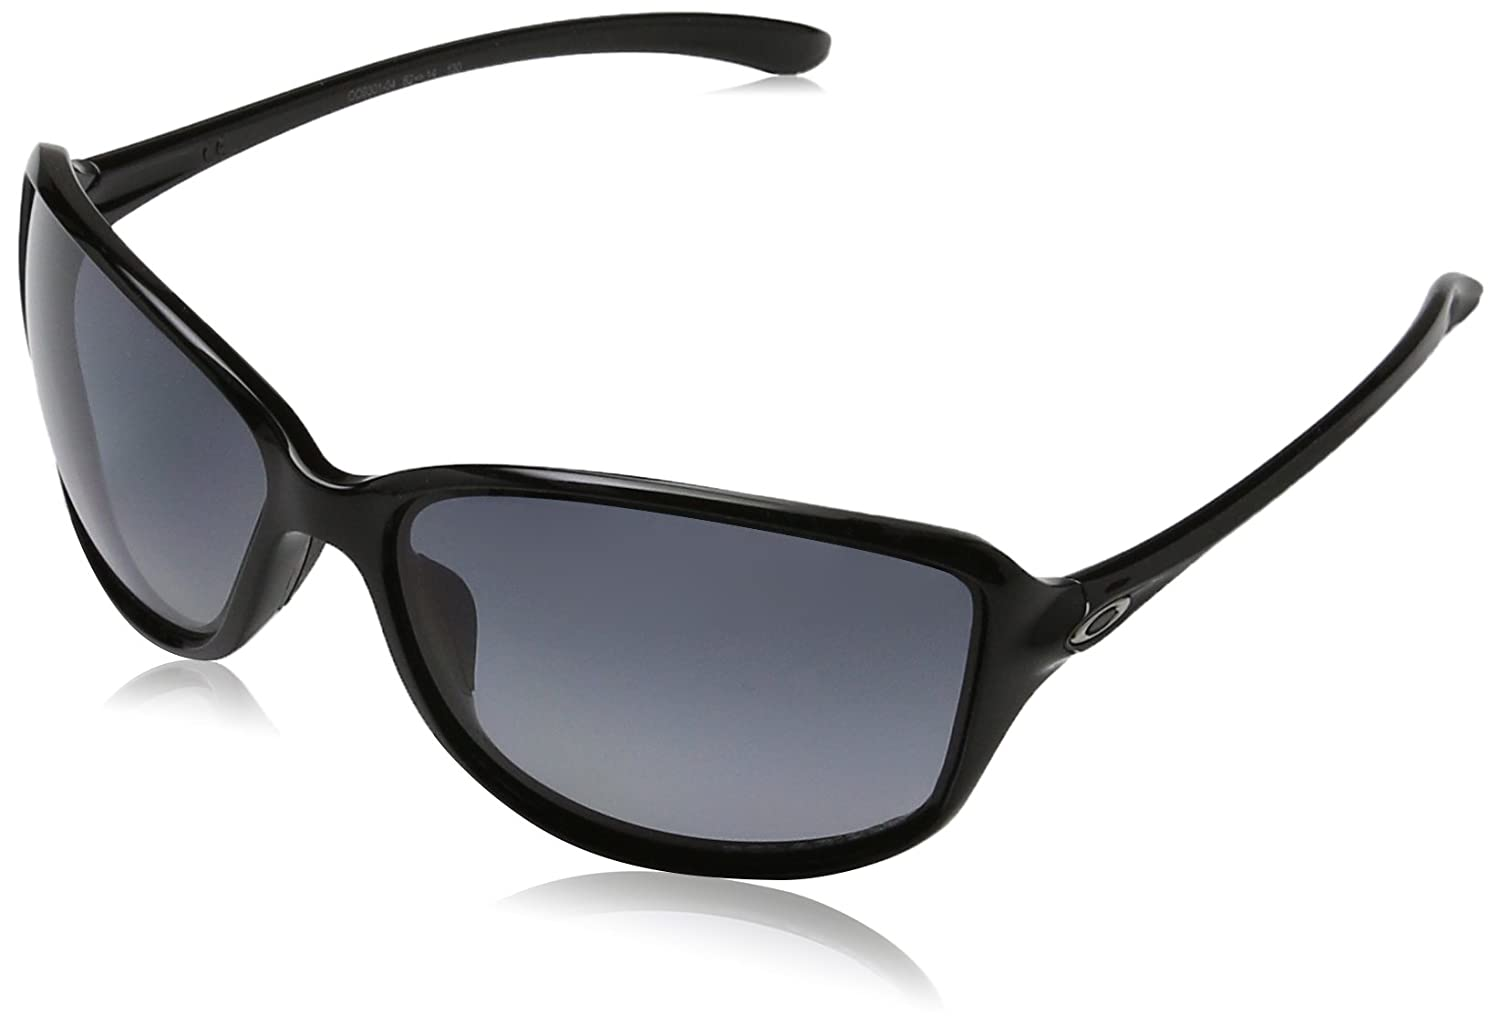 4be789b9ca6 Amazon.com  Oakley Women s Cohort Sunglasses